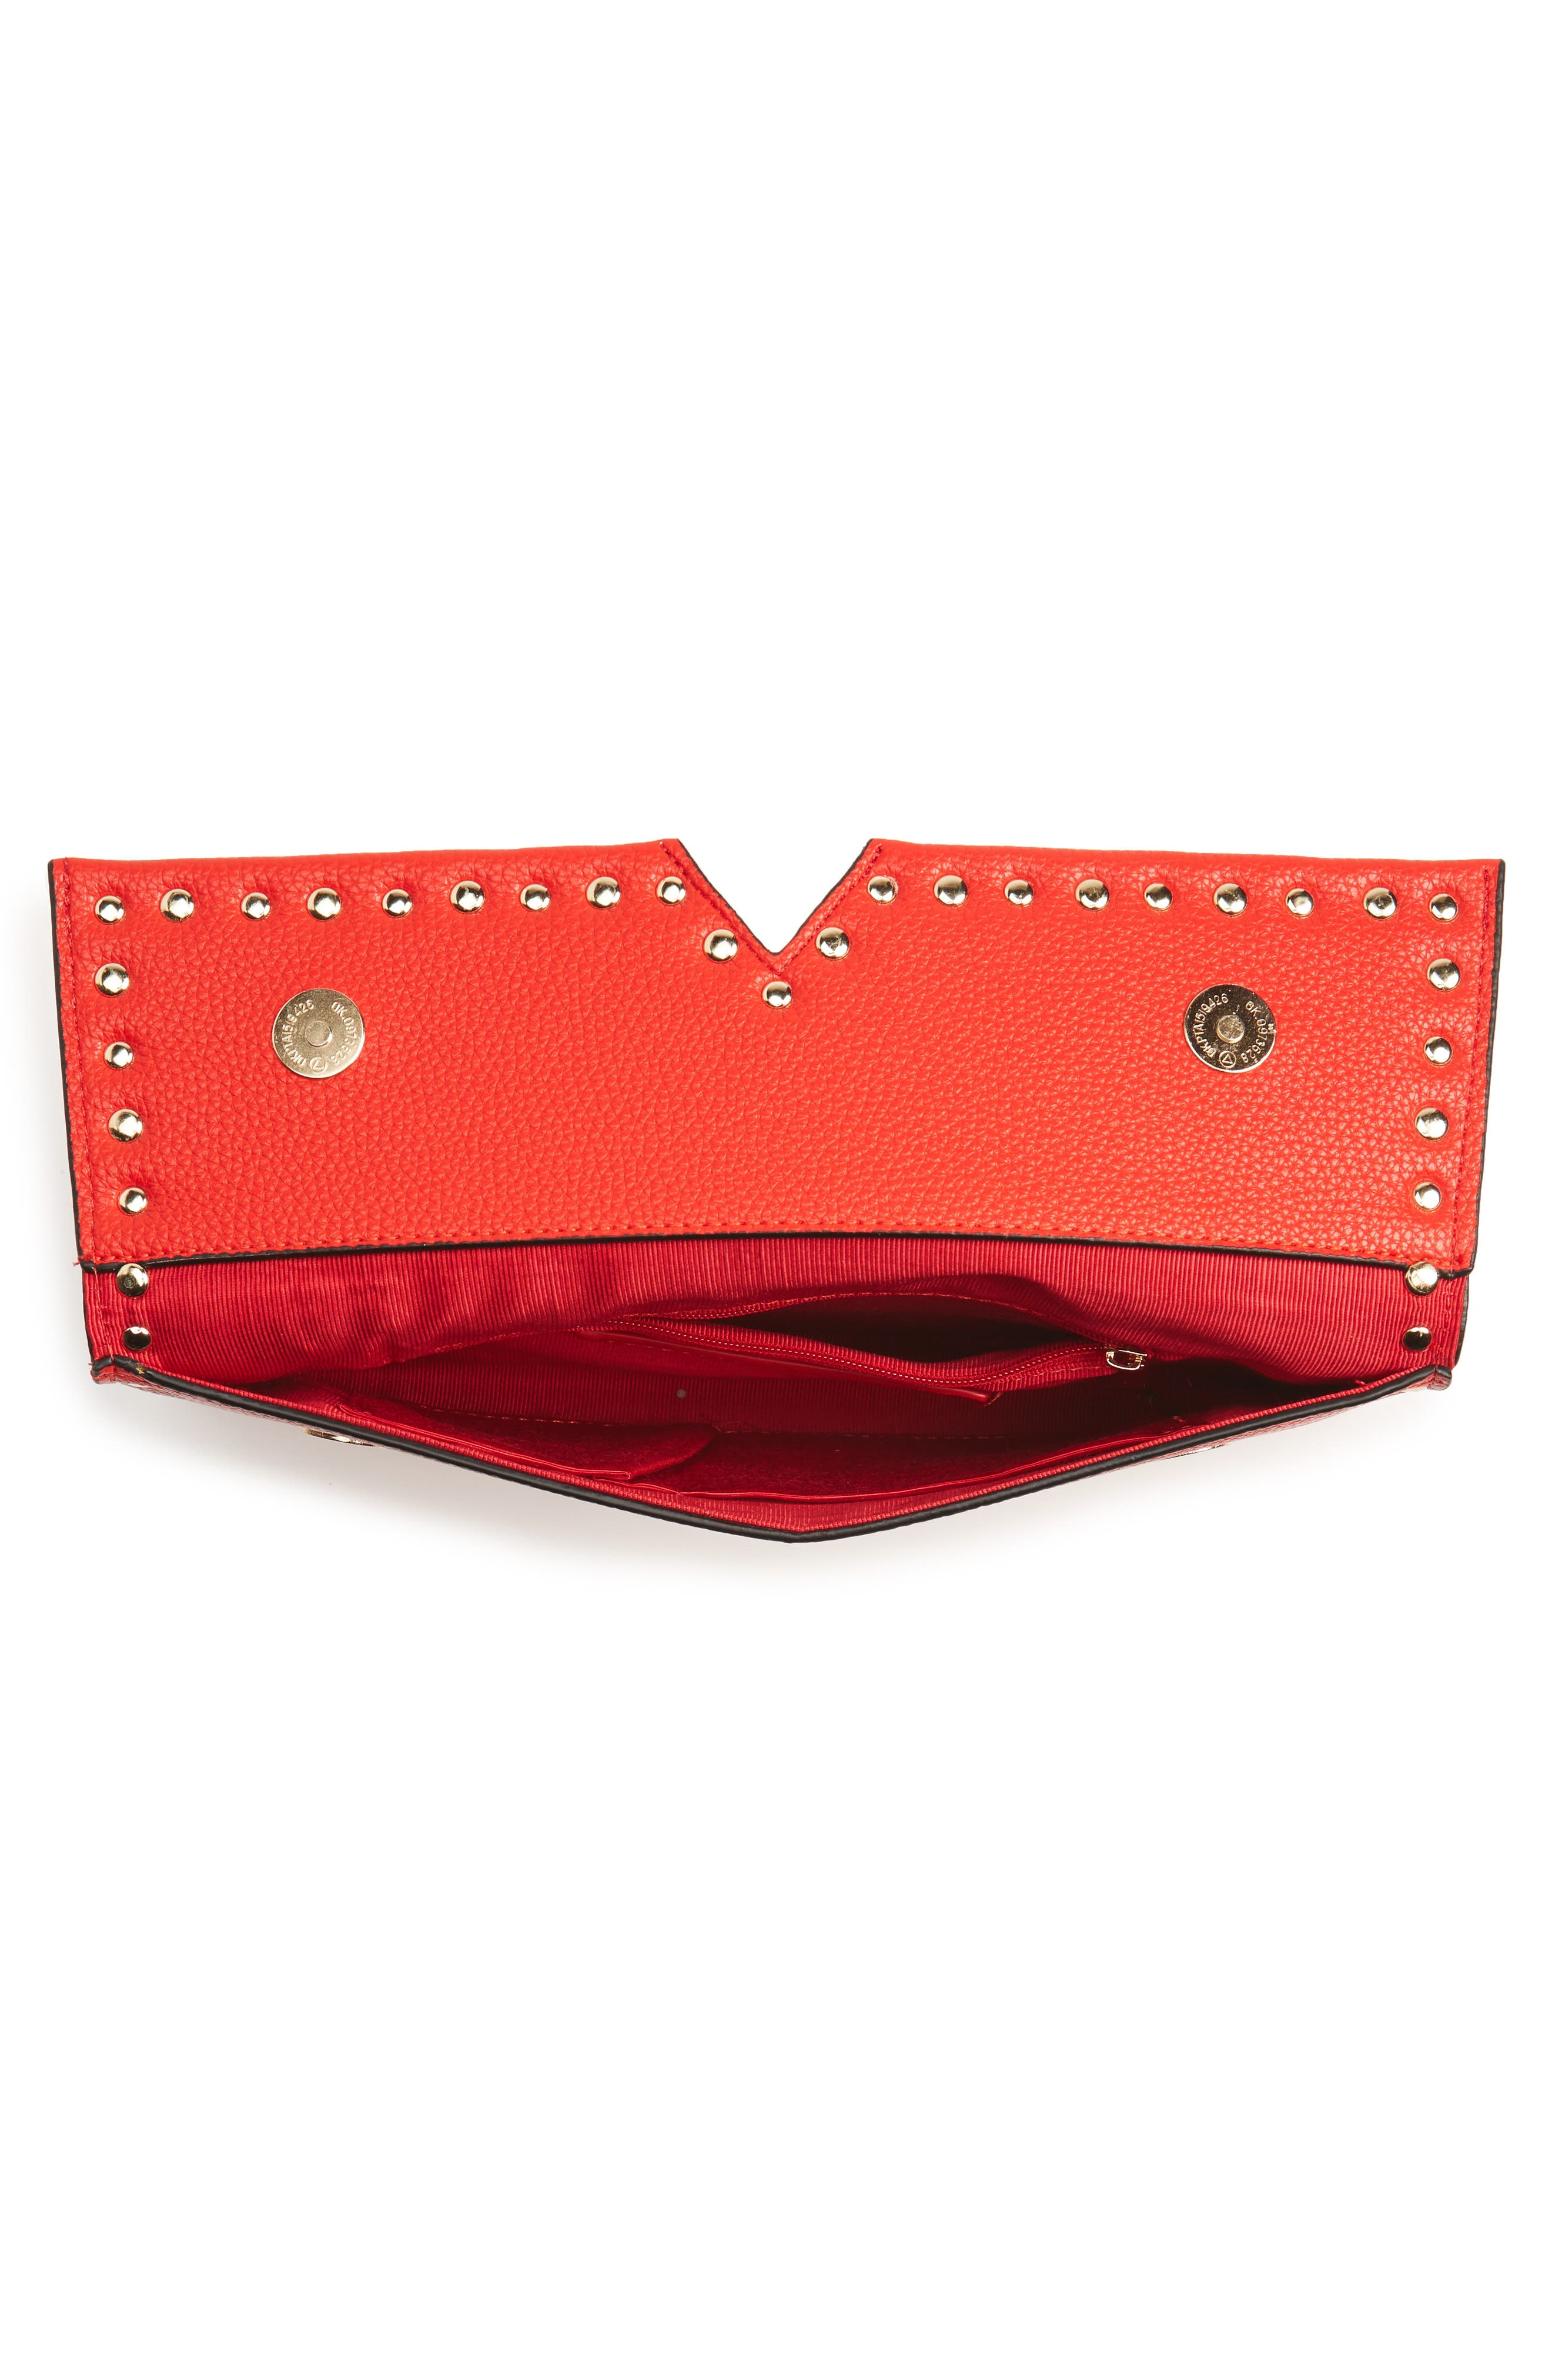 SR Squared by Sondra Roberts Studded Faux Leather Clutch,                             Alternate thumbnail 5, color,                             600